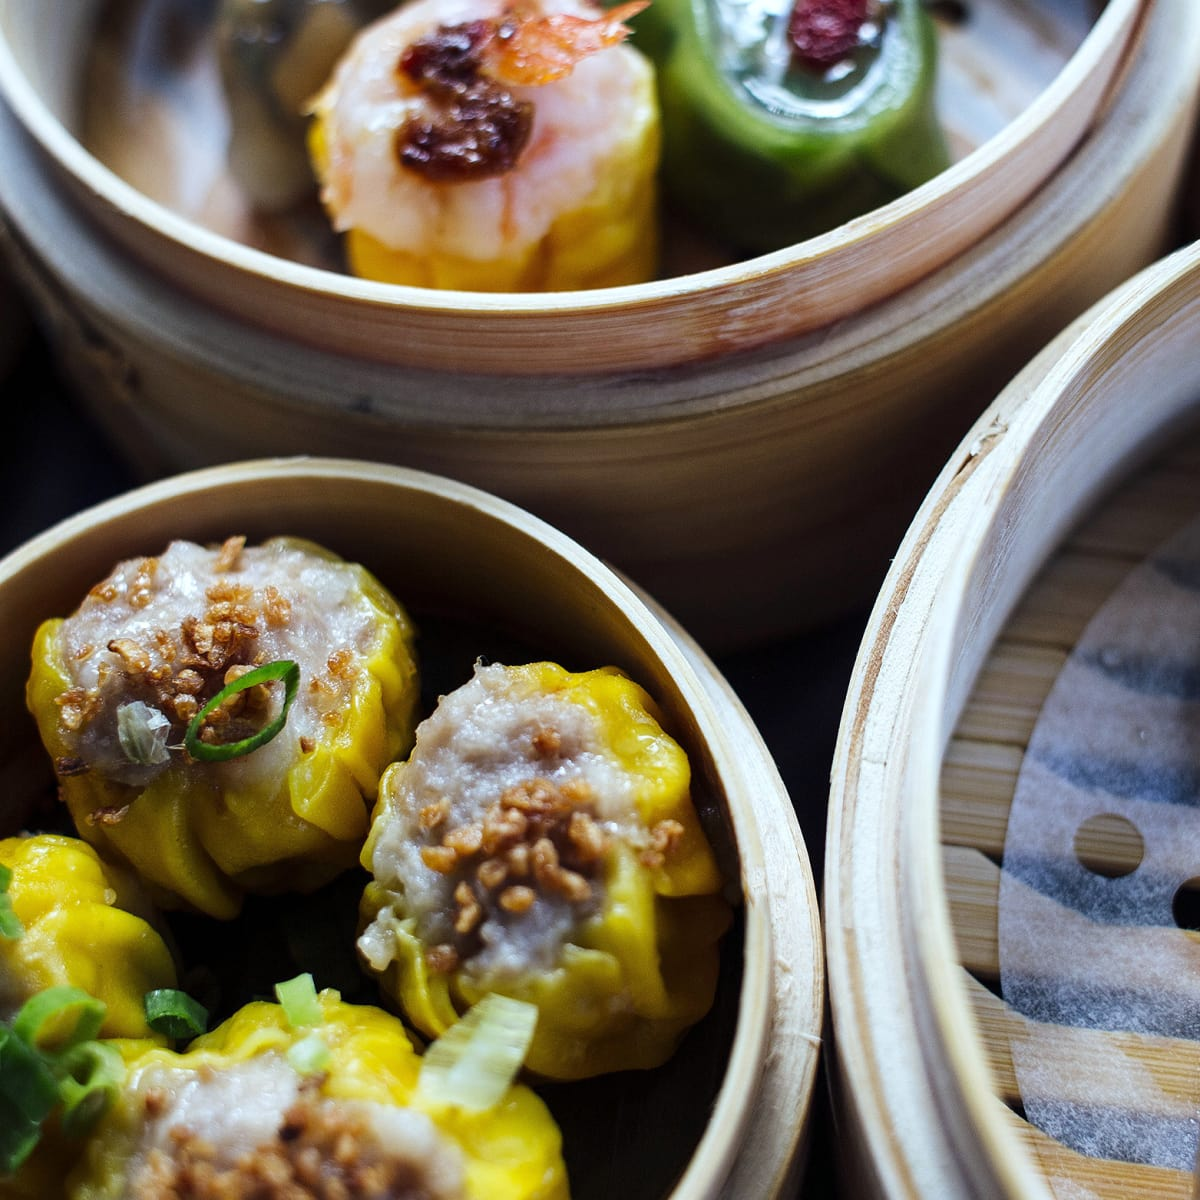 Houston, Dim sum assortment at Yauatcha, Sept 2017